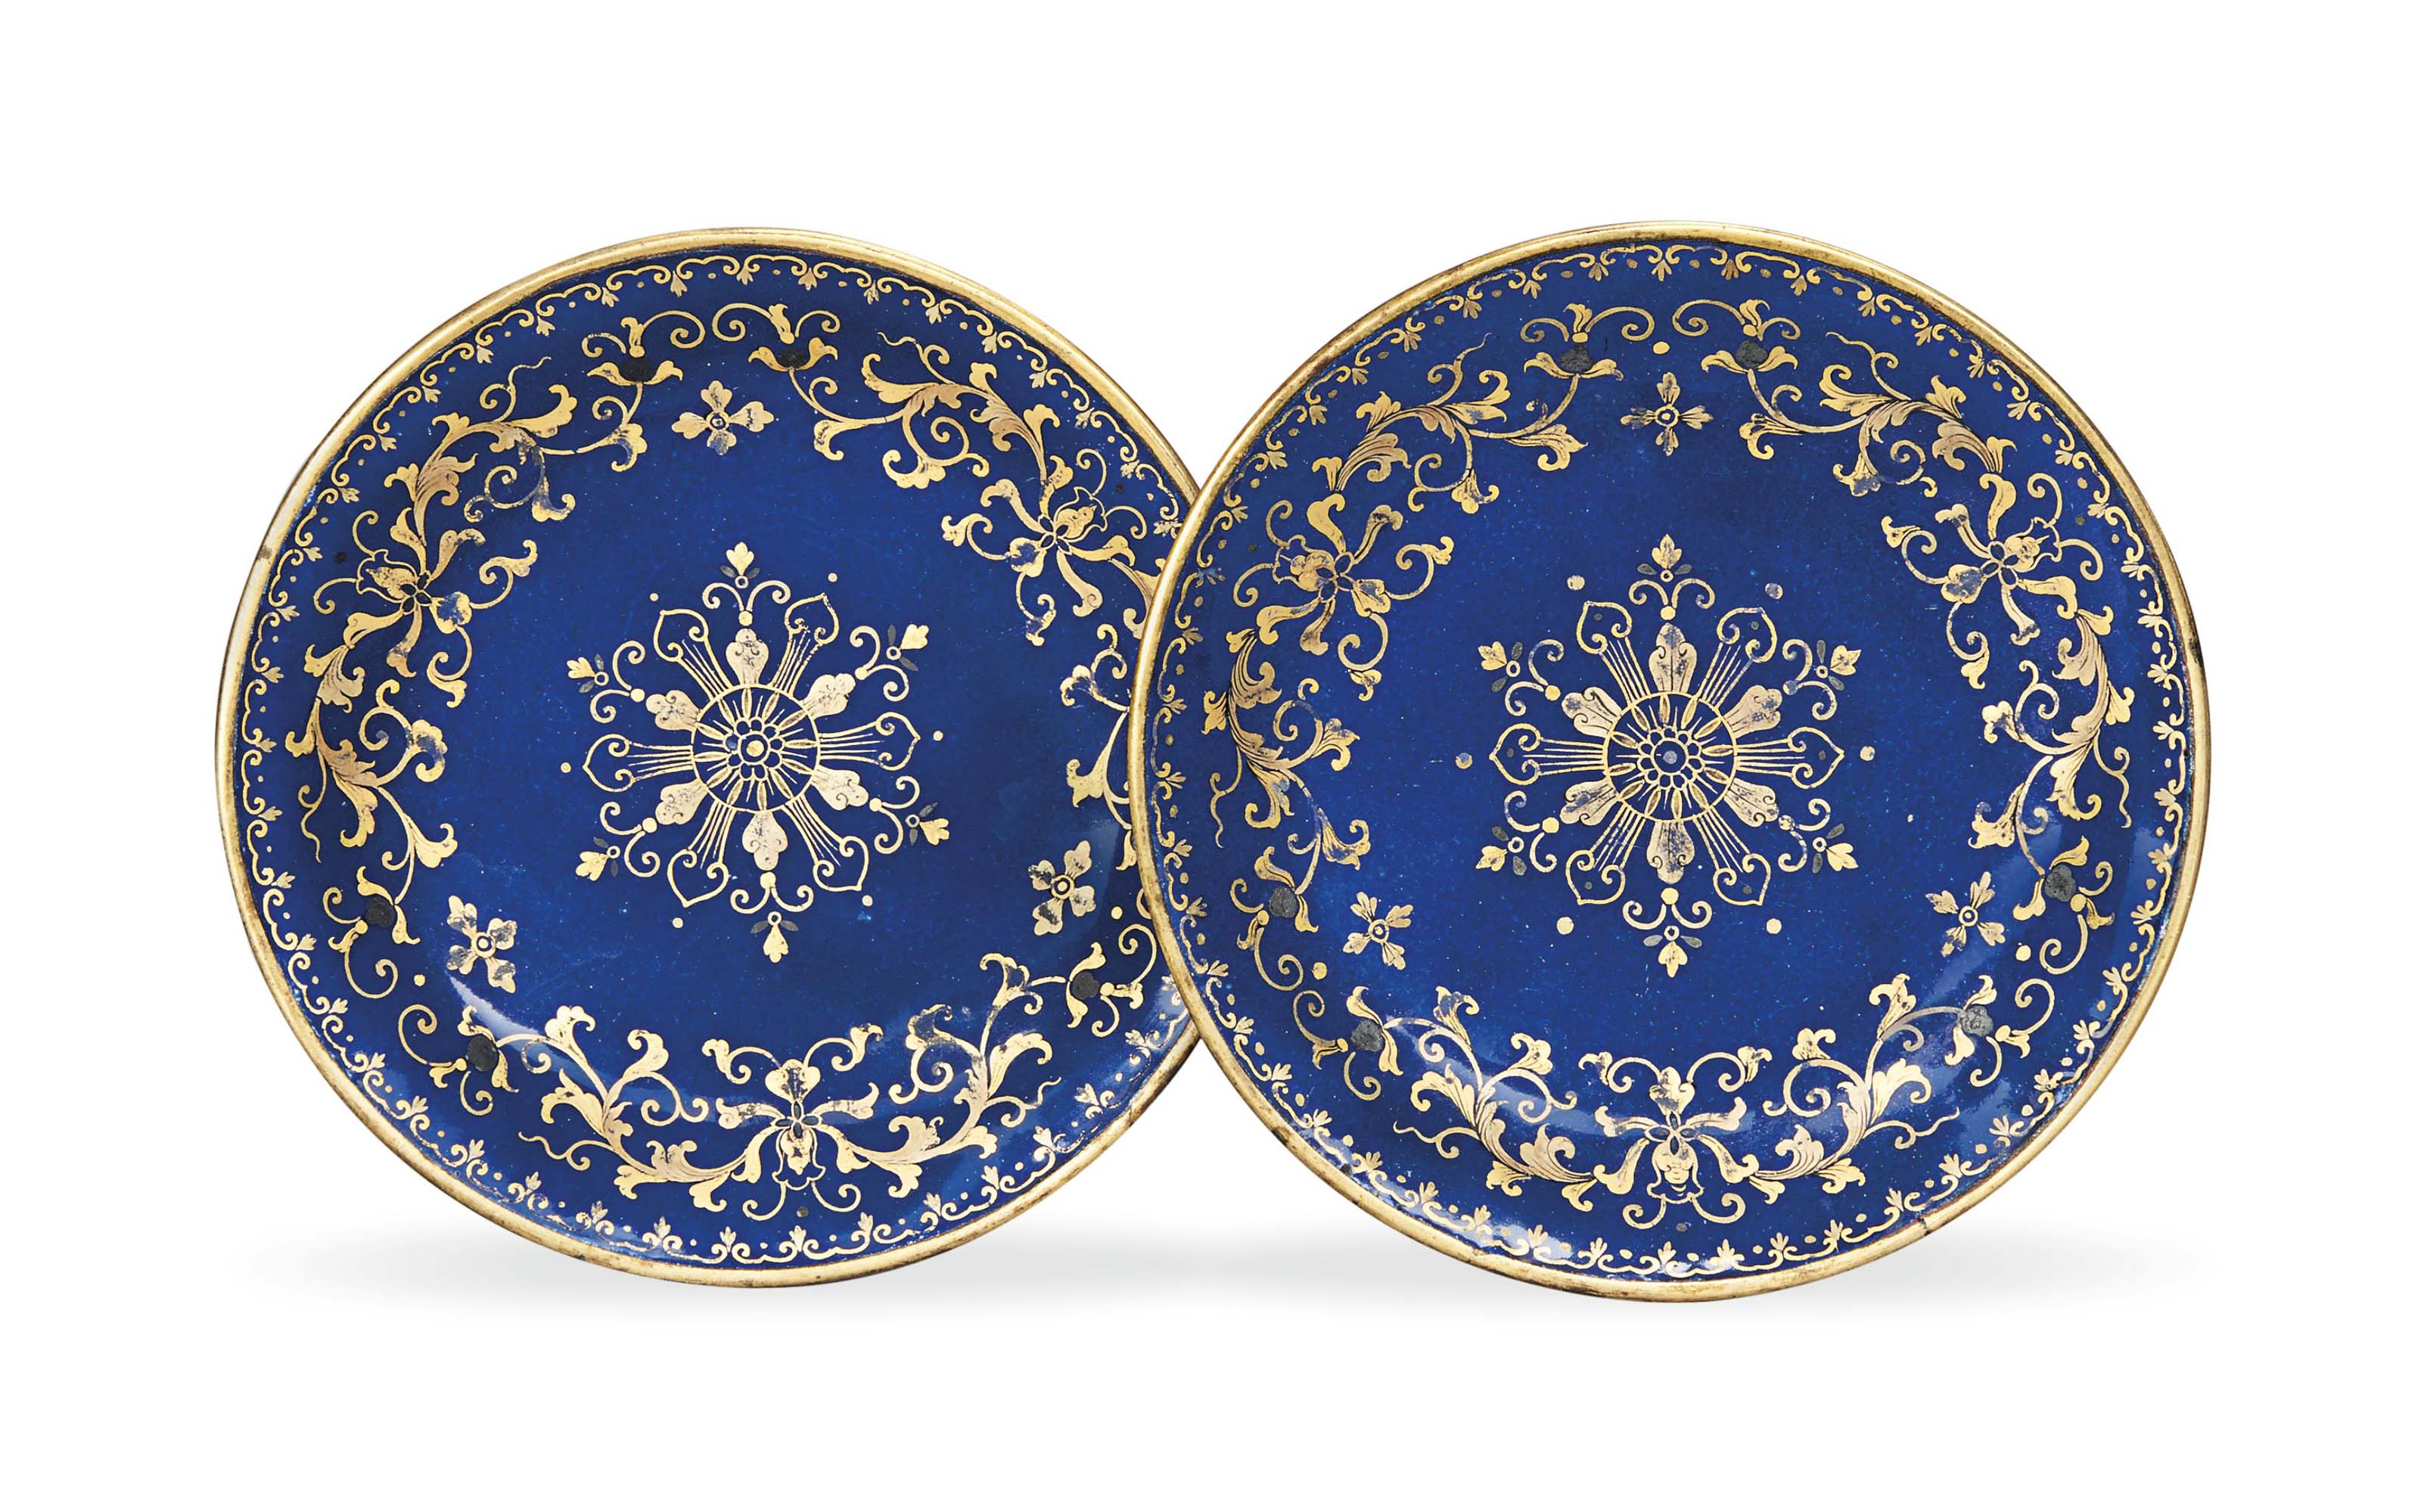 A PAIR OF CHINESE BLUE ENAMEL AND GILT SAUCER DISHES